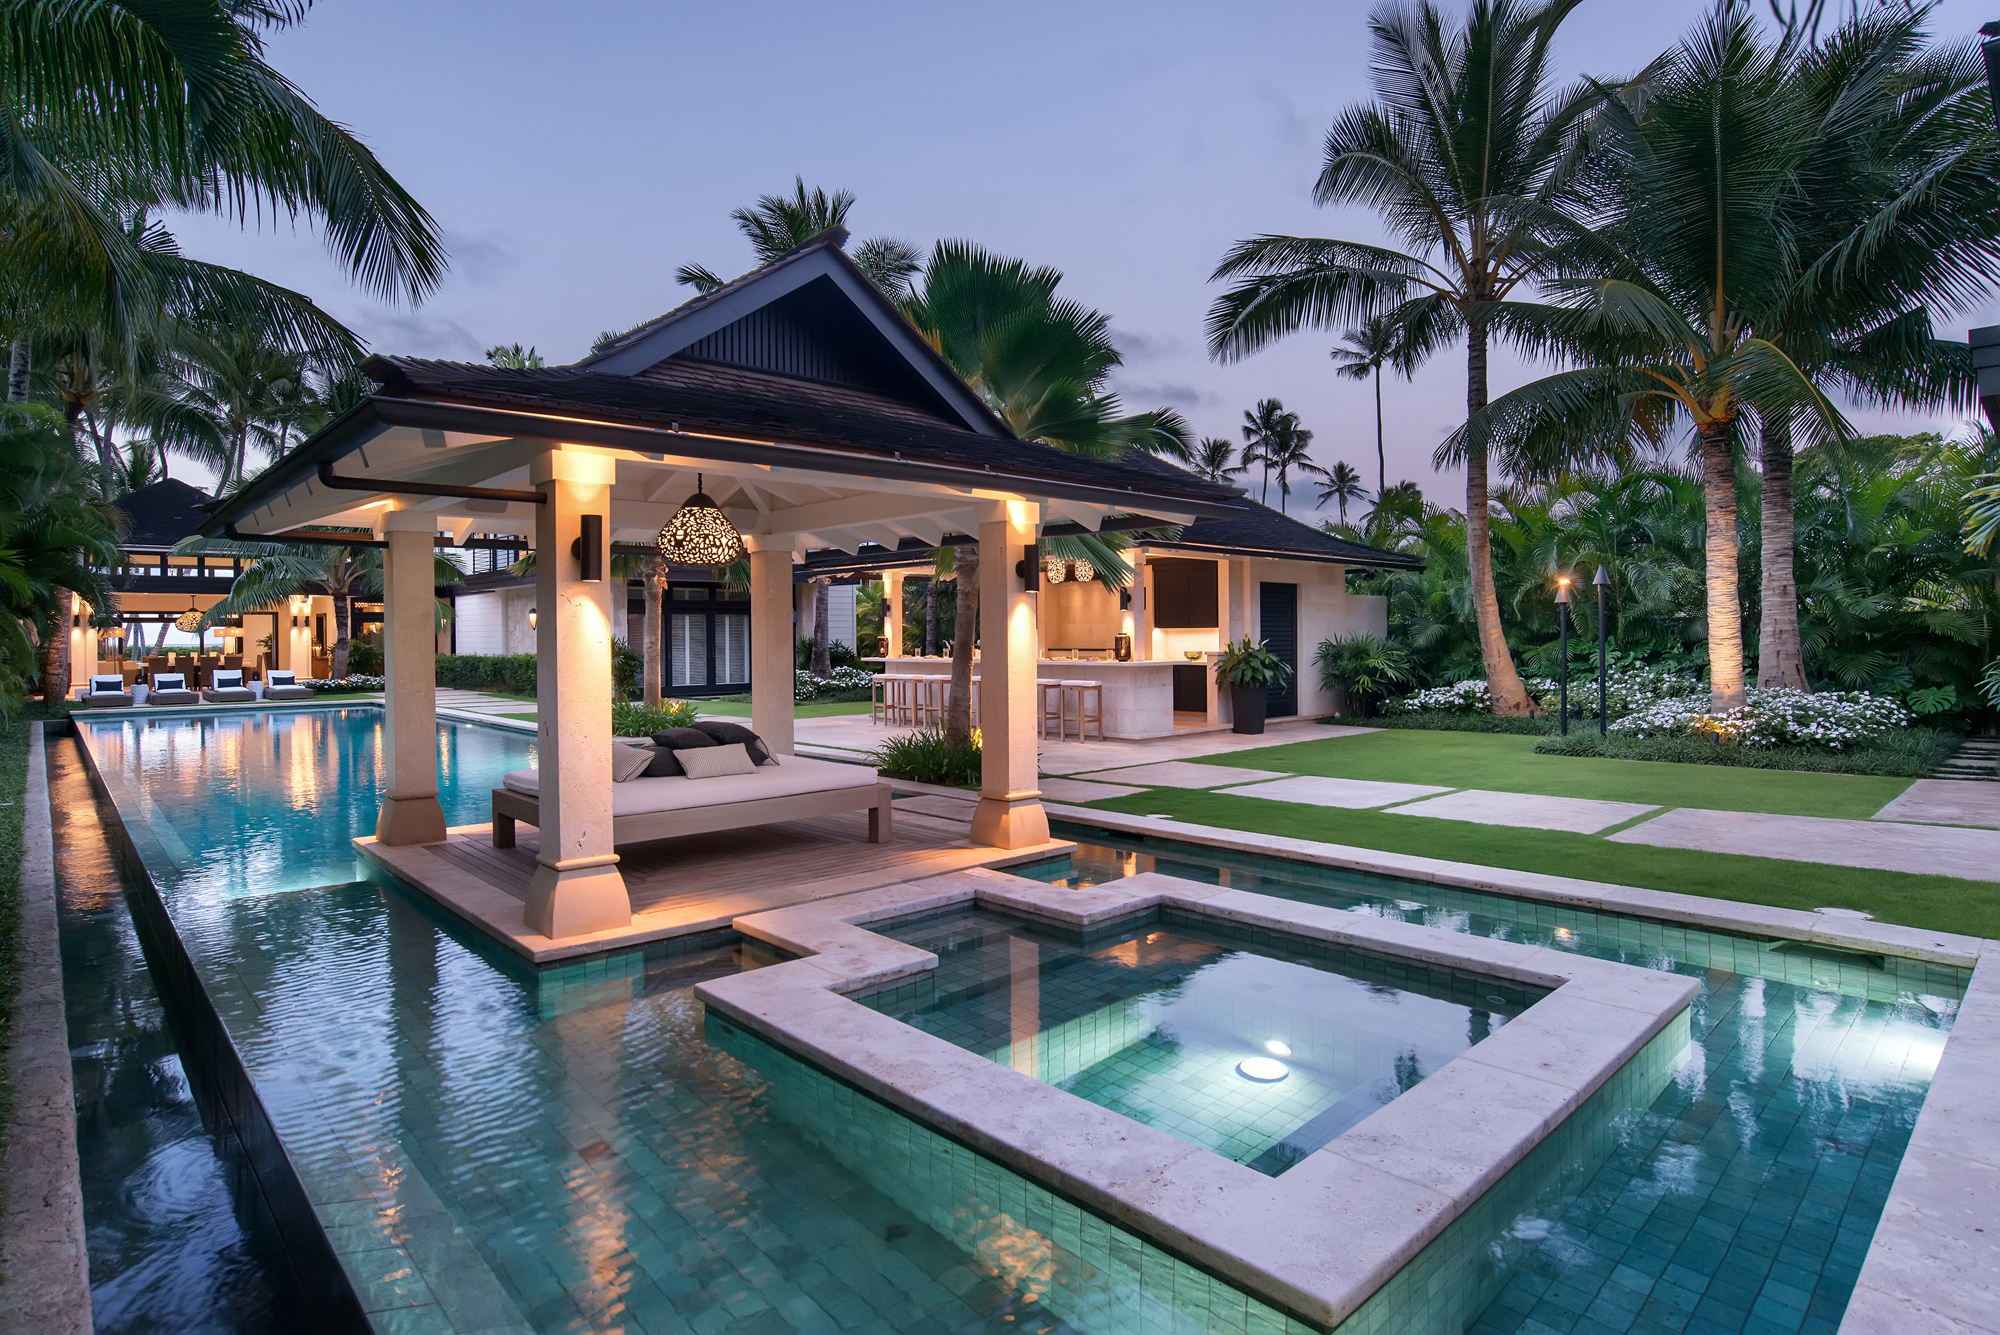 Coldwell banker global luxury blog luxury home style for Hawaii luxury homes for sale